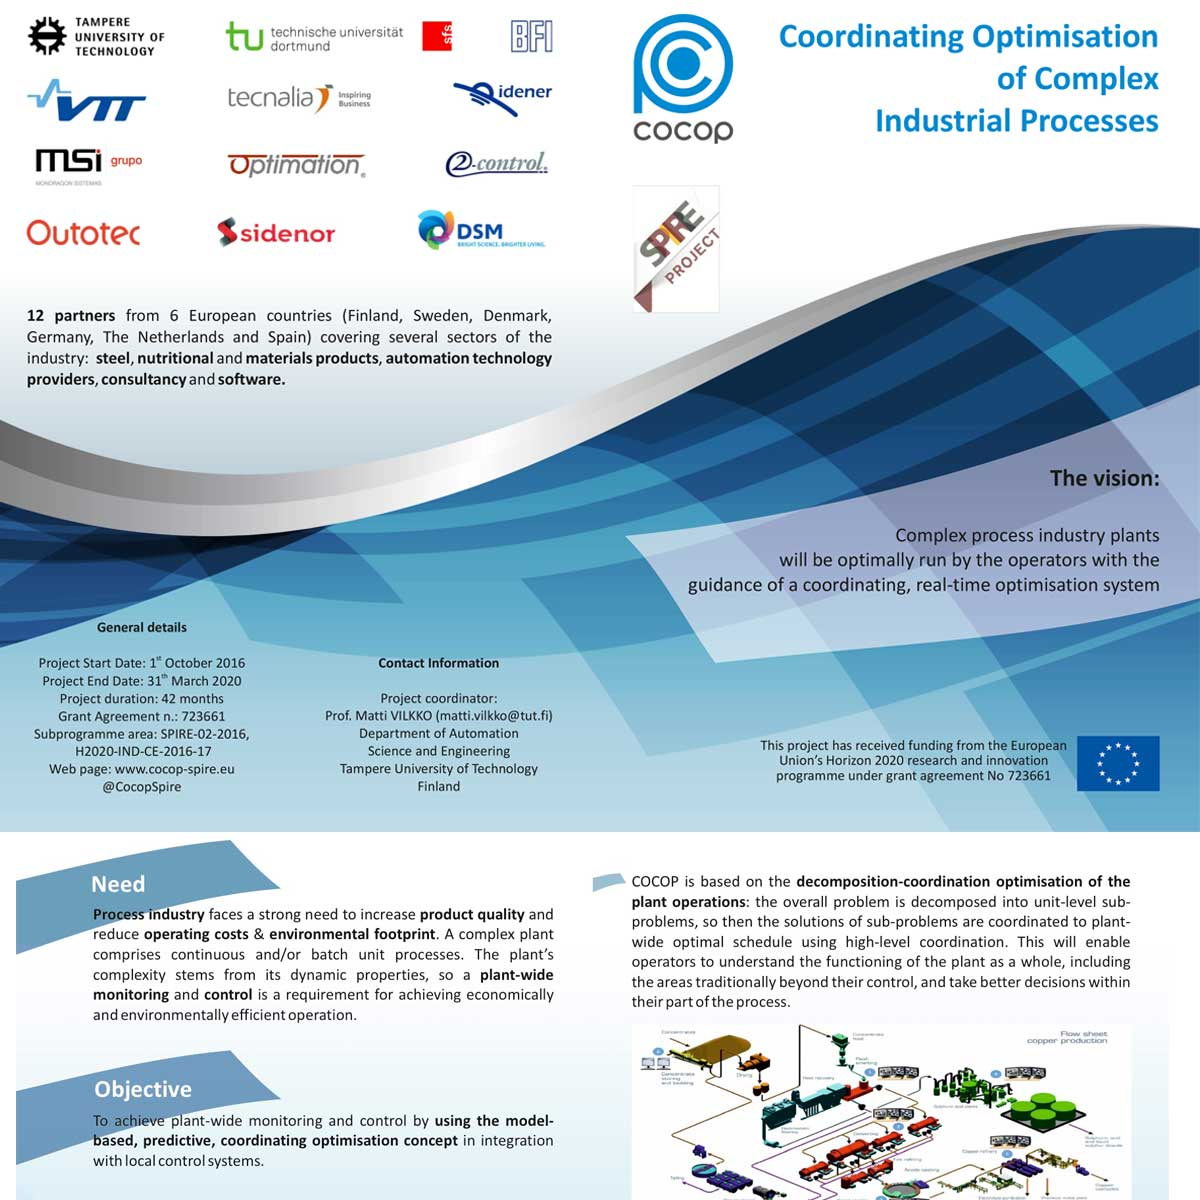 Coordinating Optimisation of Complex Industrial Processes